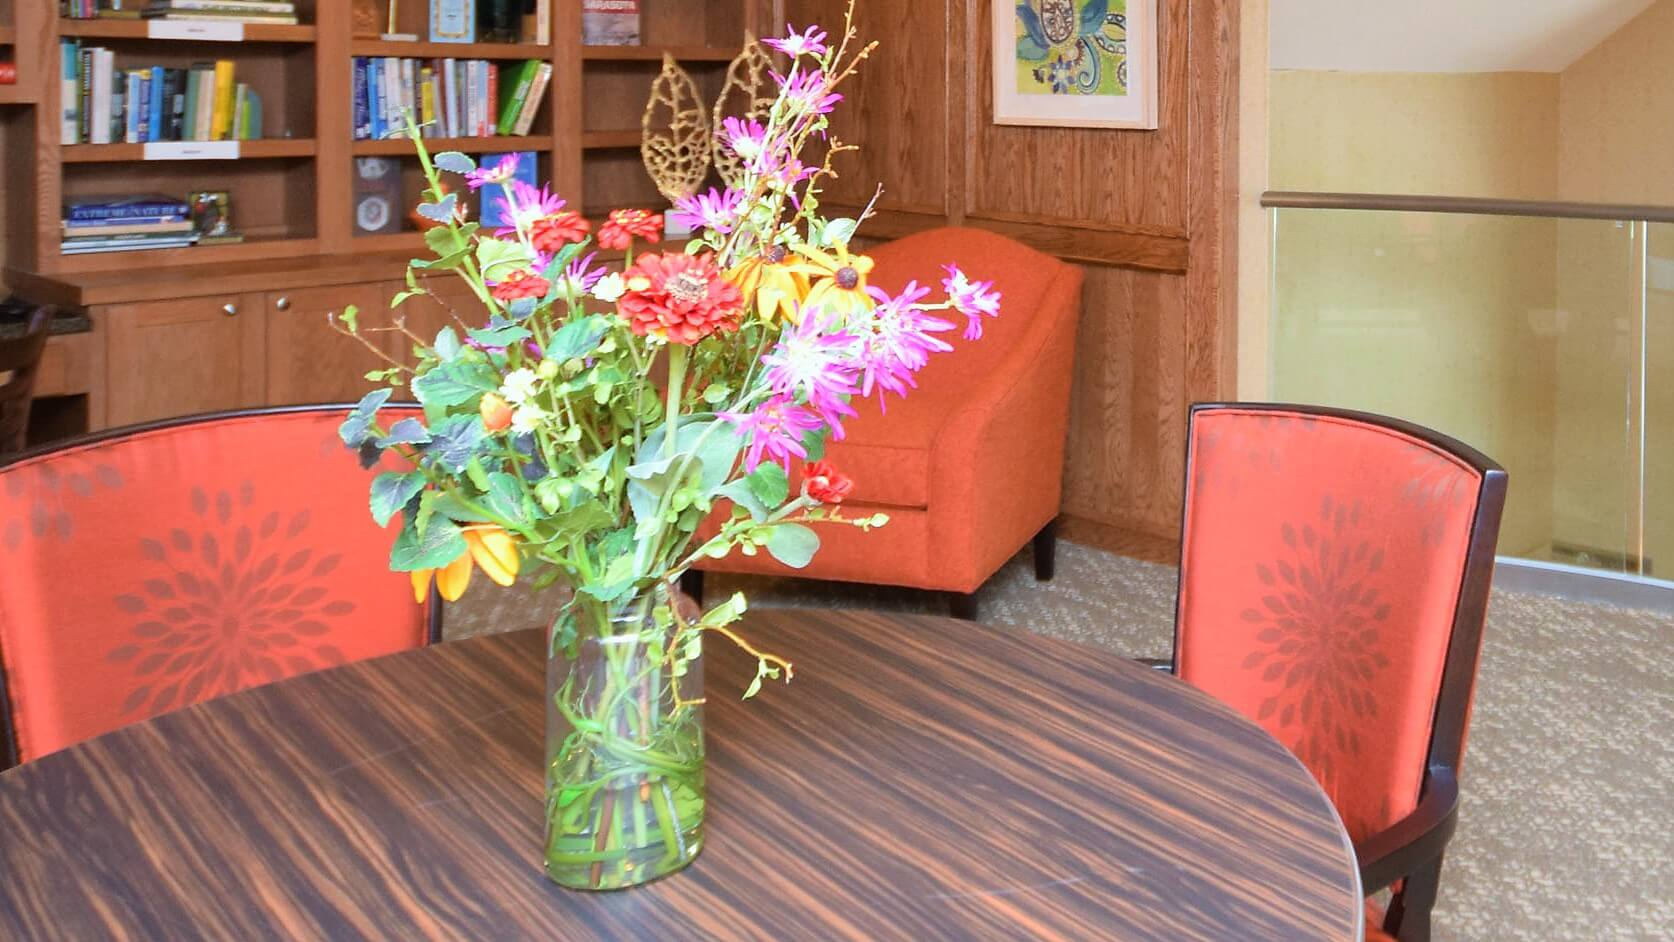 Floral and library display at Stone River.